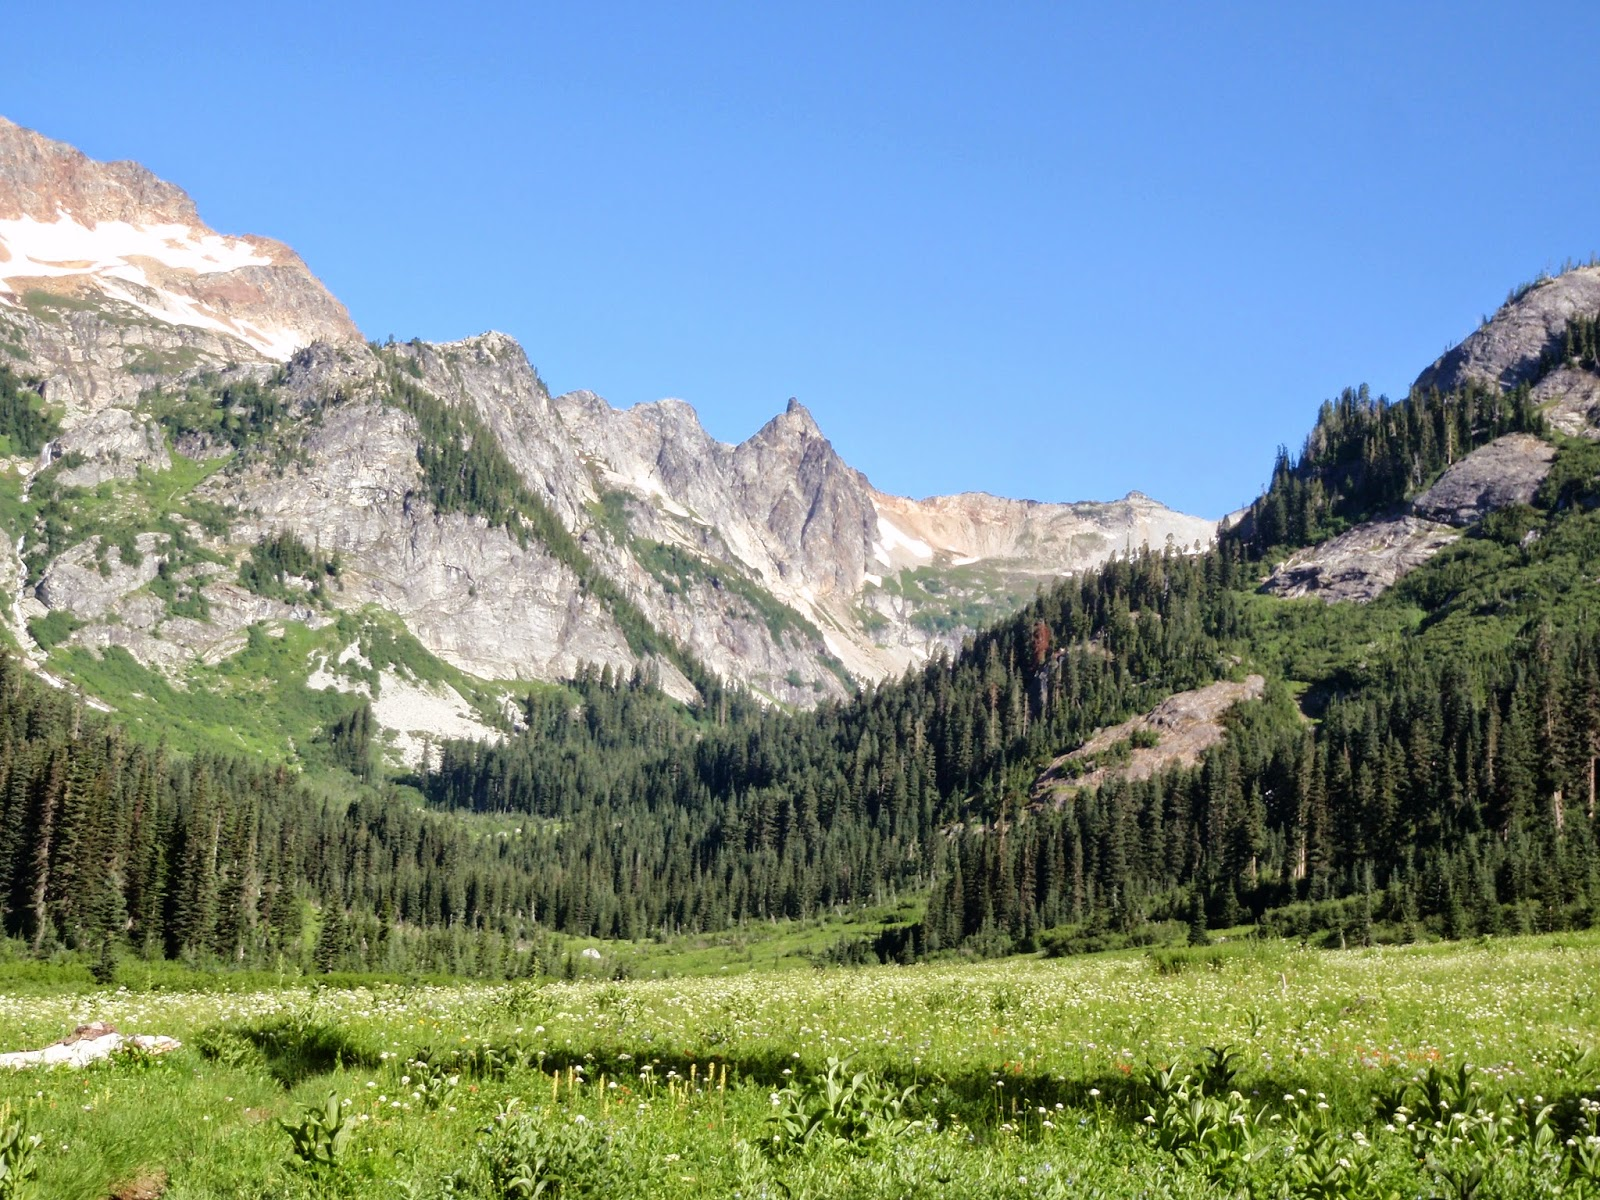 Spider Meadow looking toward Spider Gap @ Glacier Peak Wilderness